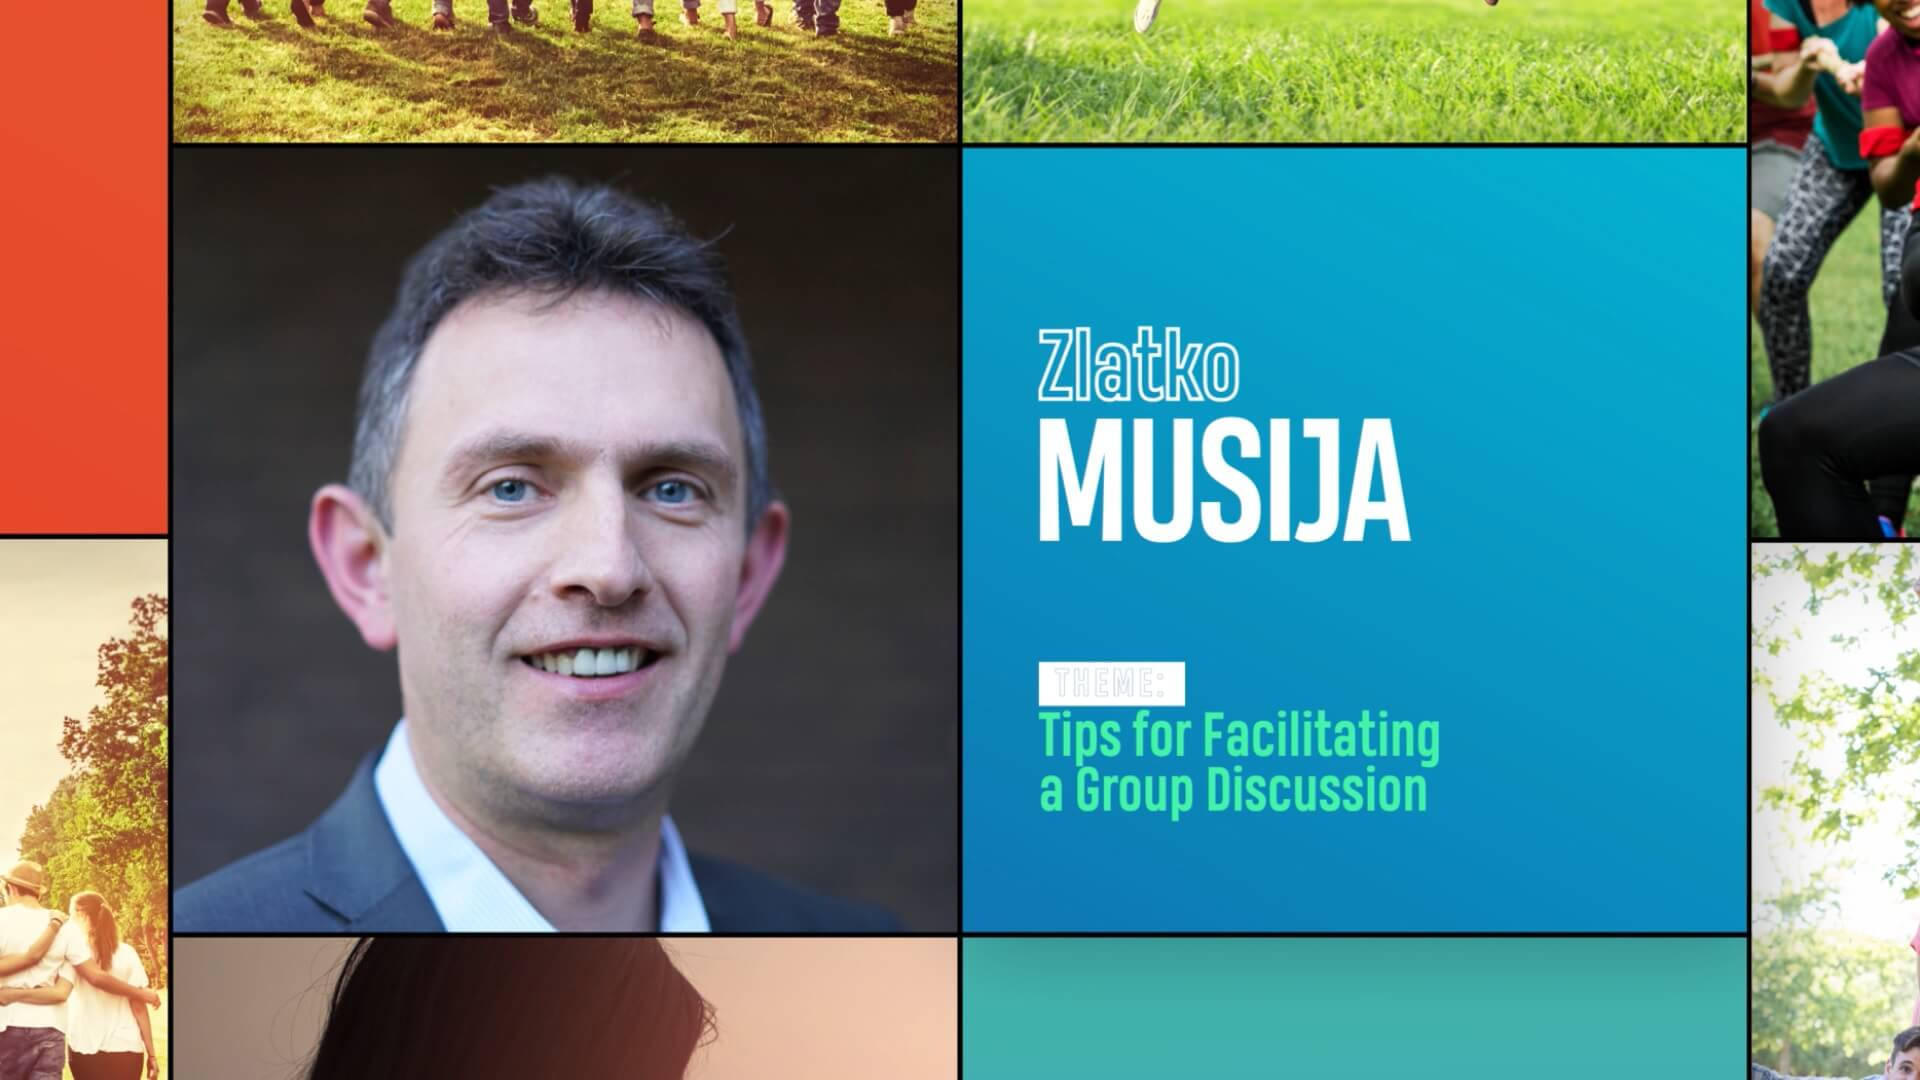 Z.Musija tips for facilitating a group discussion